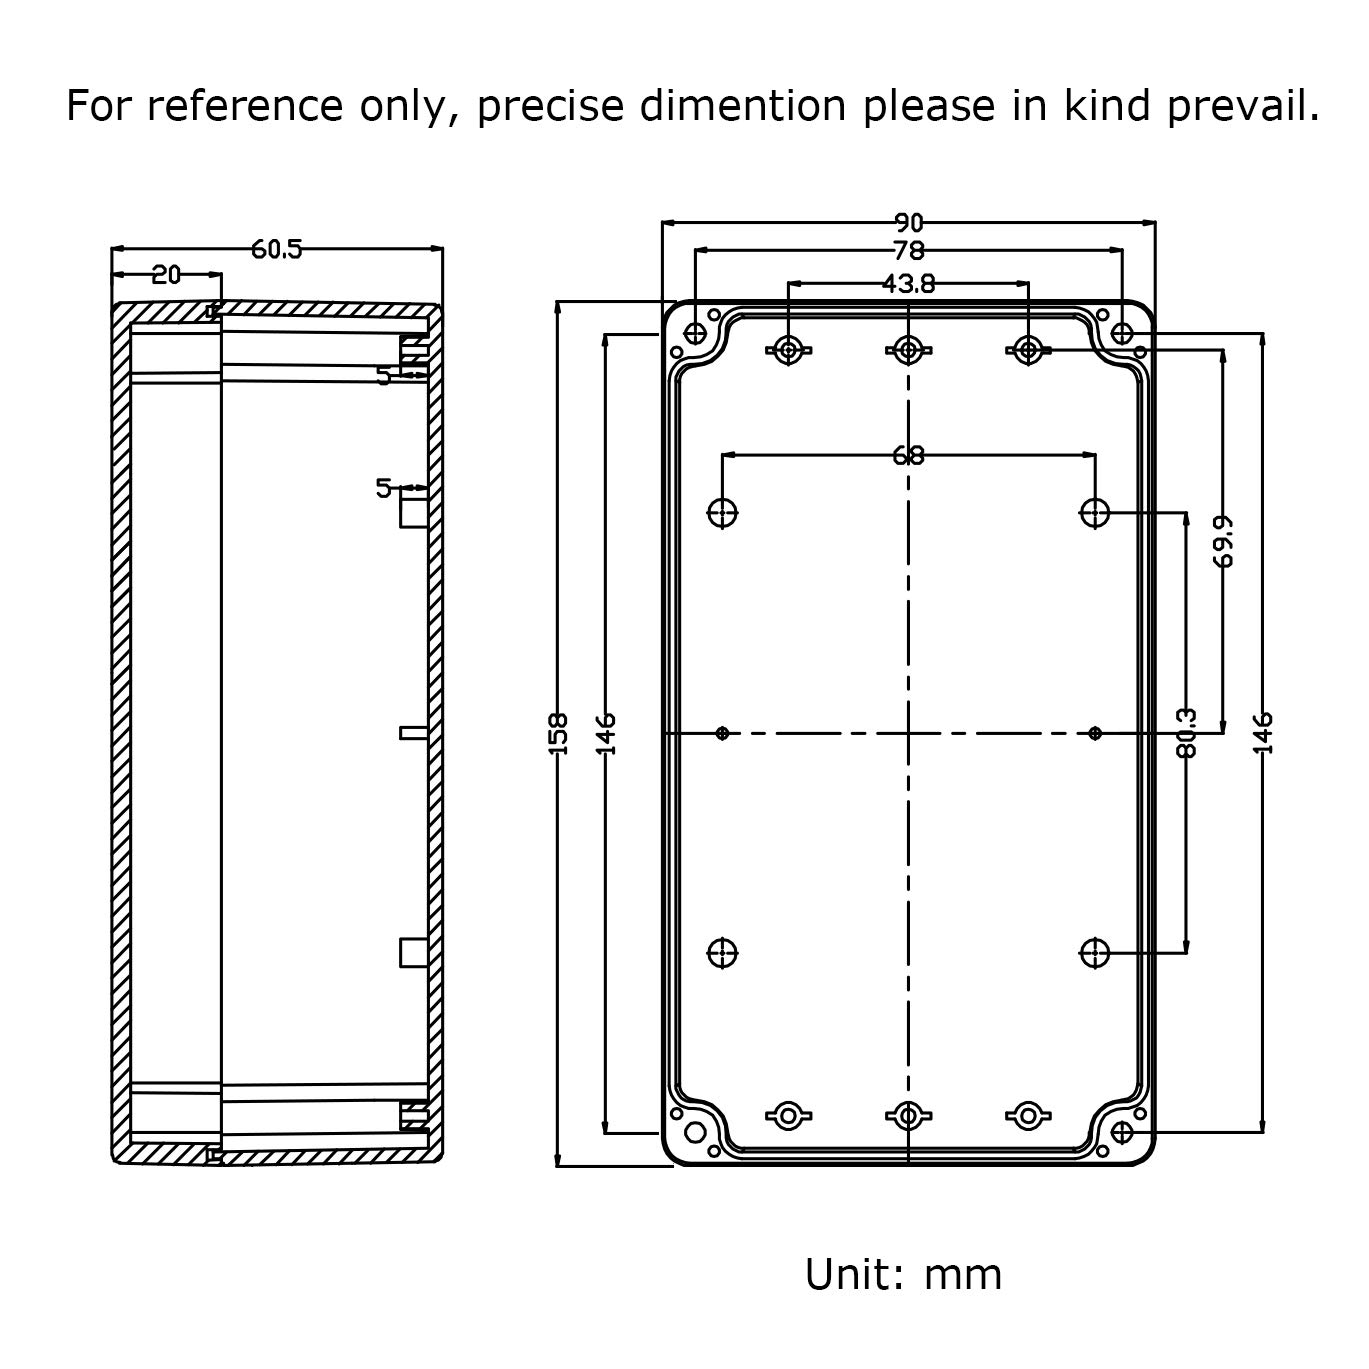 Therlan Waterproof Plastic Junction Project Box ABS IP65 Electronic Enclosure 158 x 90 x 60 mm White